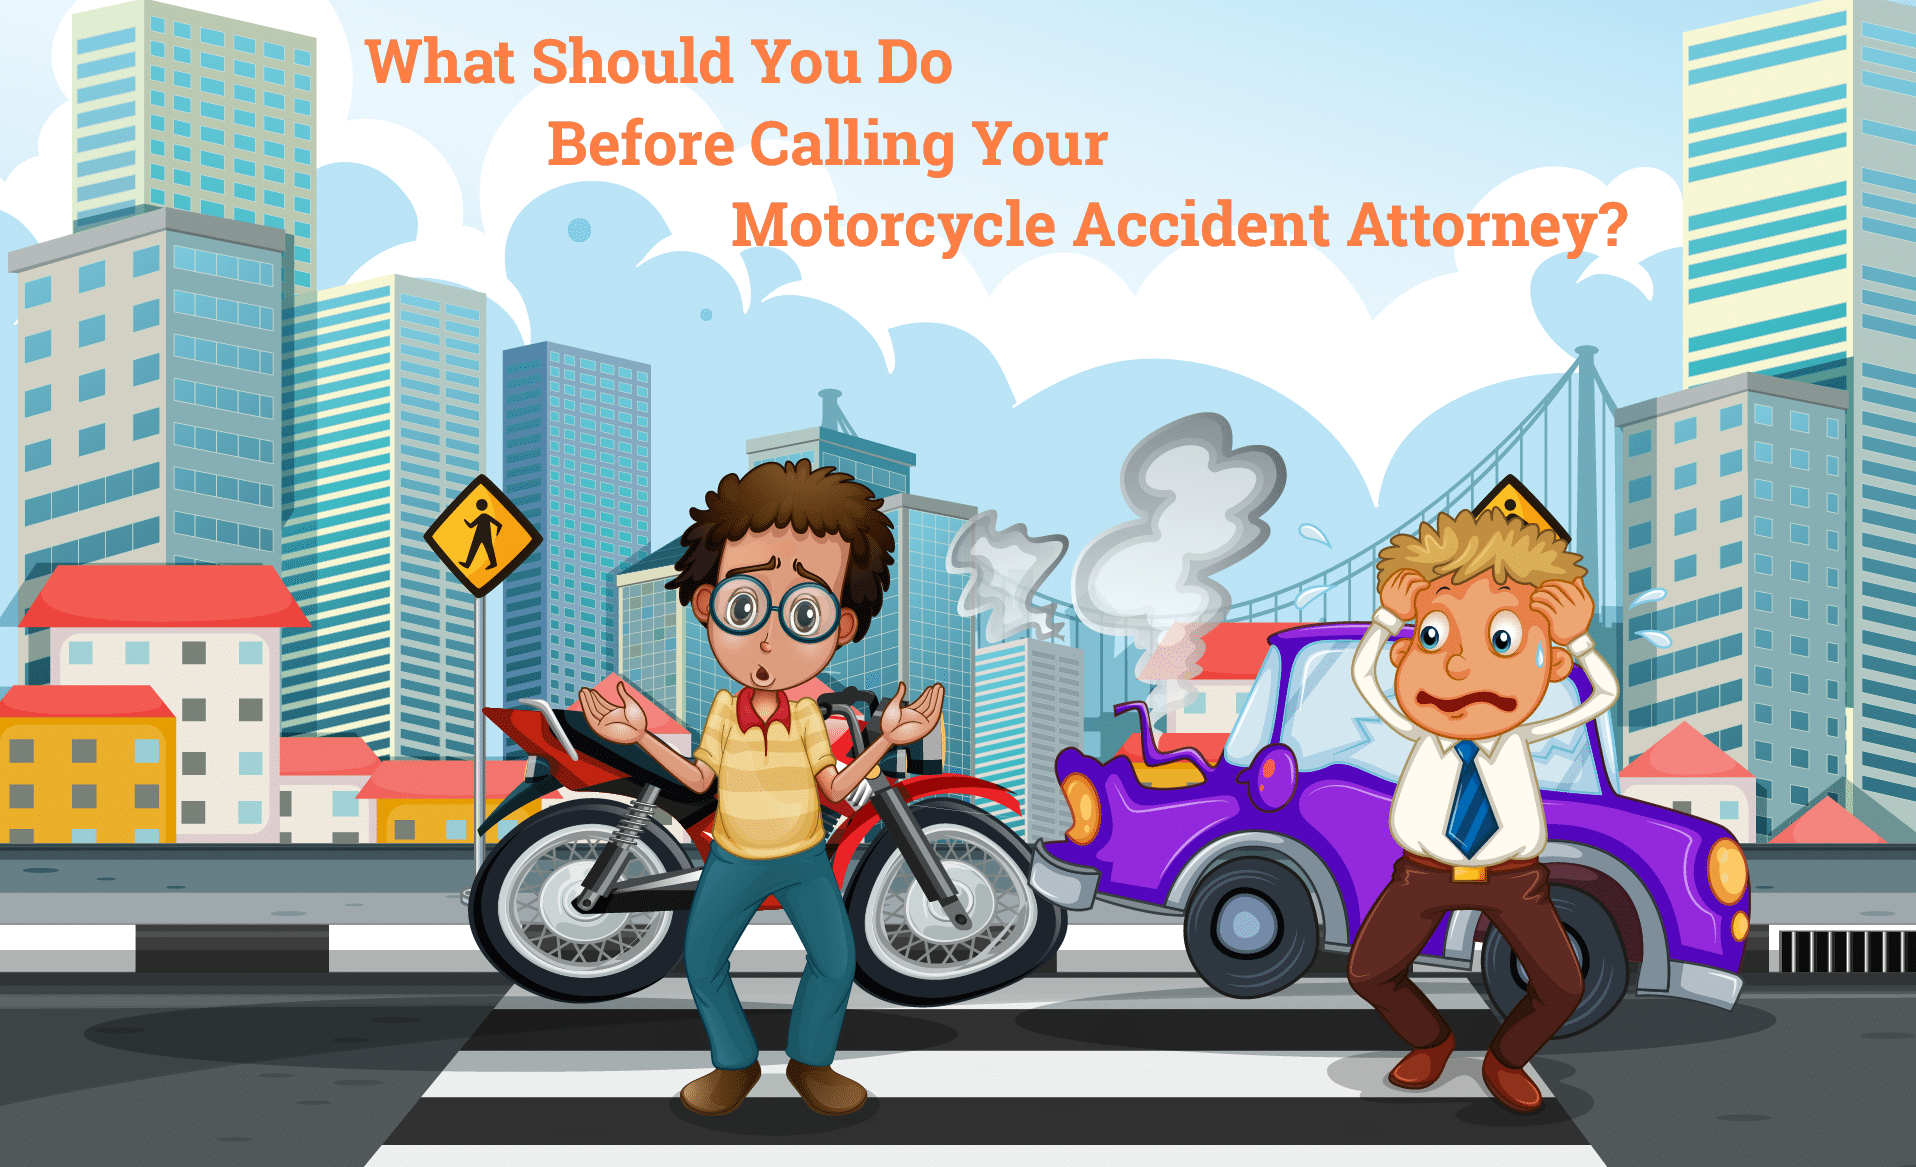 What Should You Do Before Calling Your Motorcycle Accident Attorney